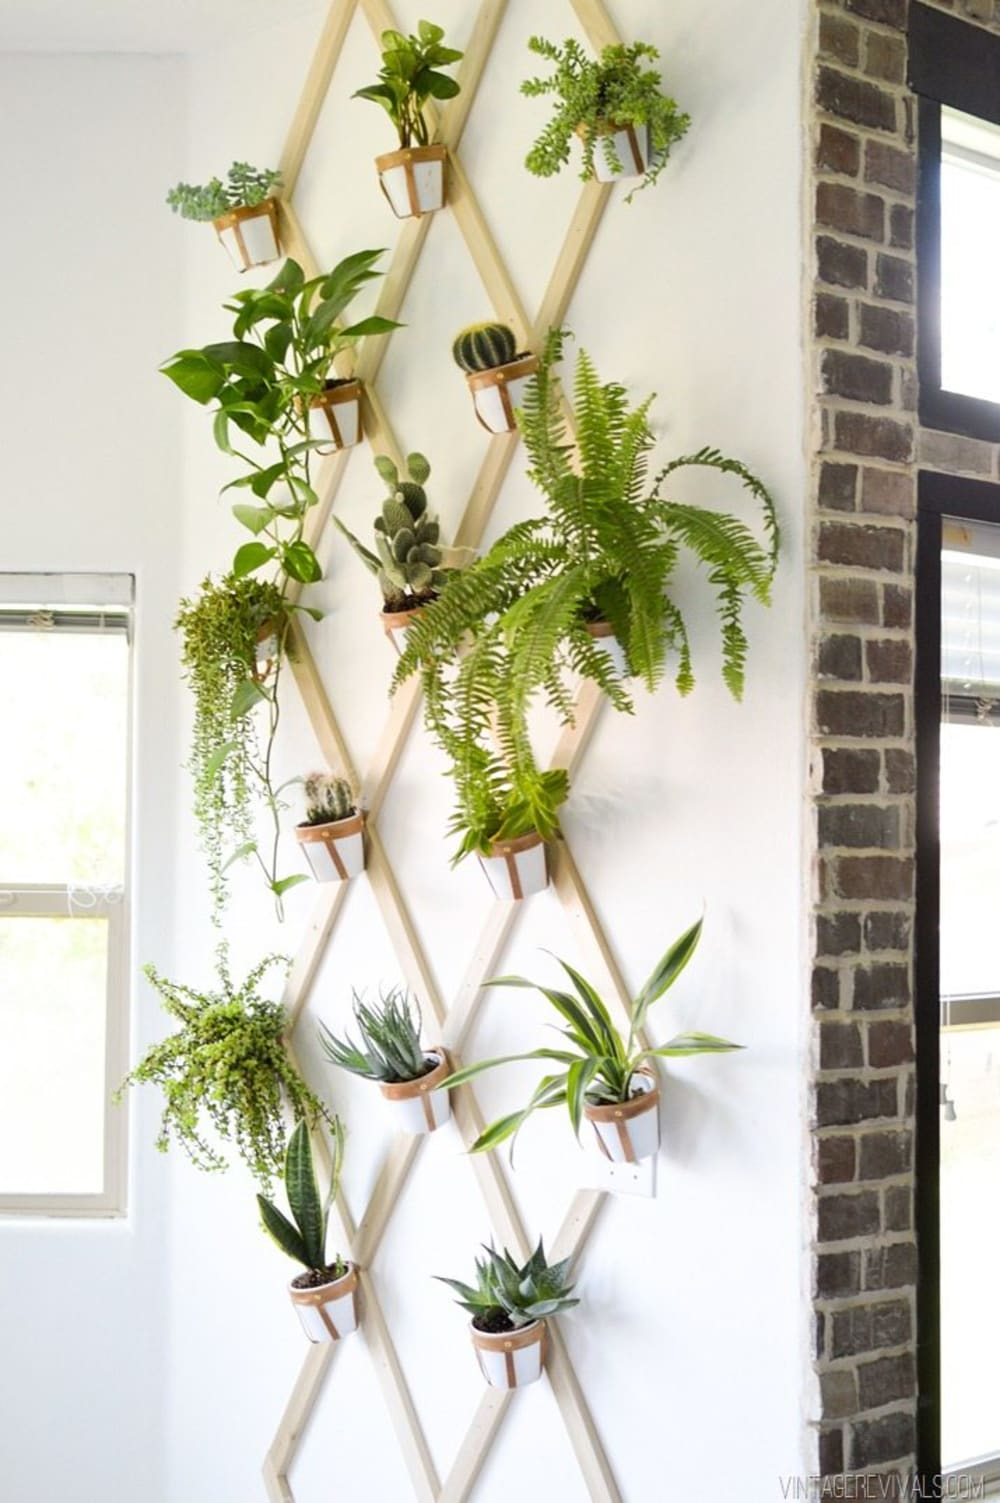 """Pots hung on a wall-mounted trellis.<span class=""""sr-only""""> (opened in a new window/tab)</span>"""